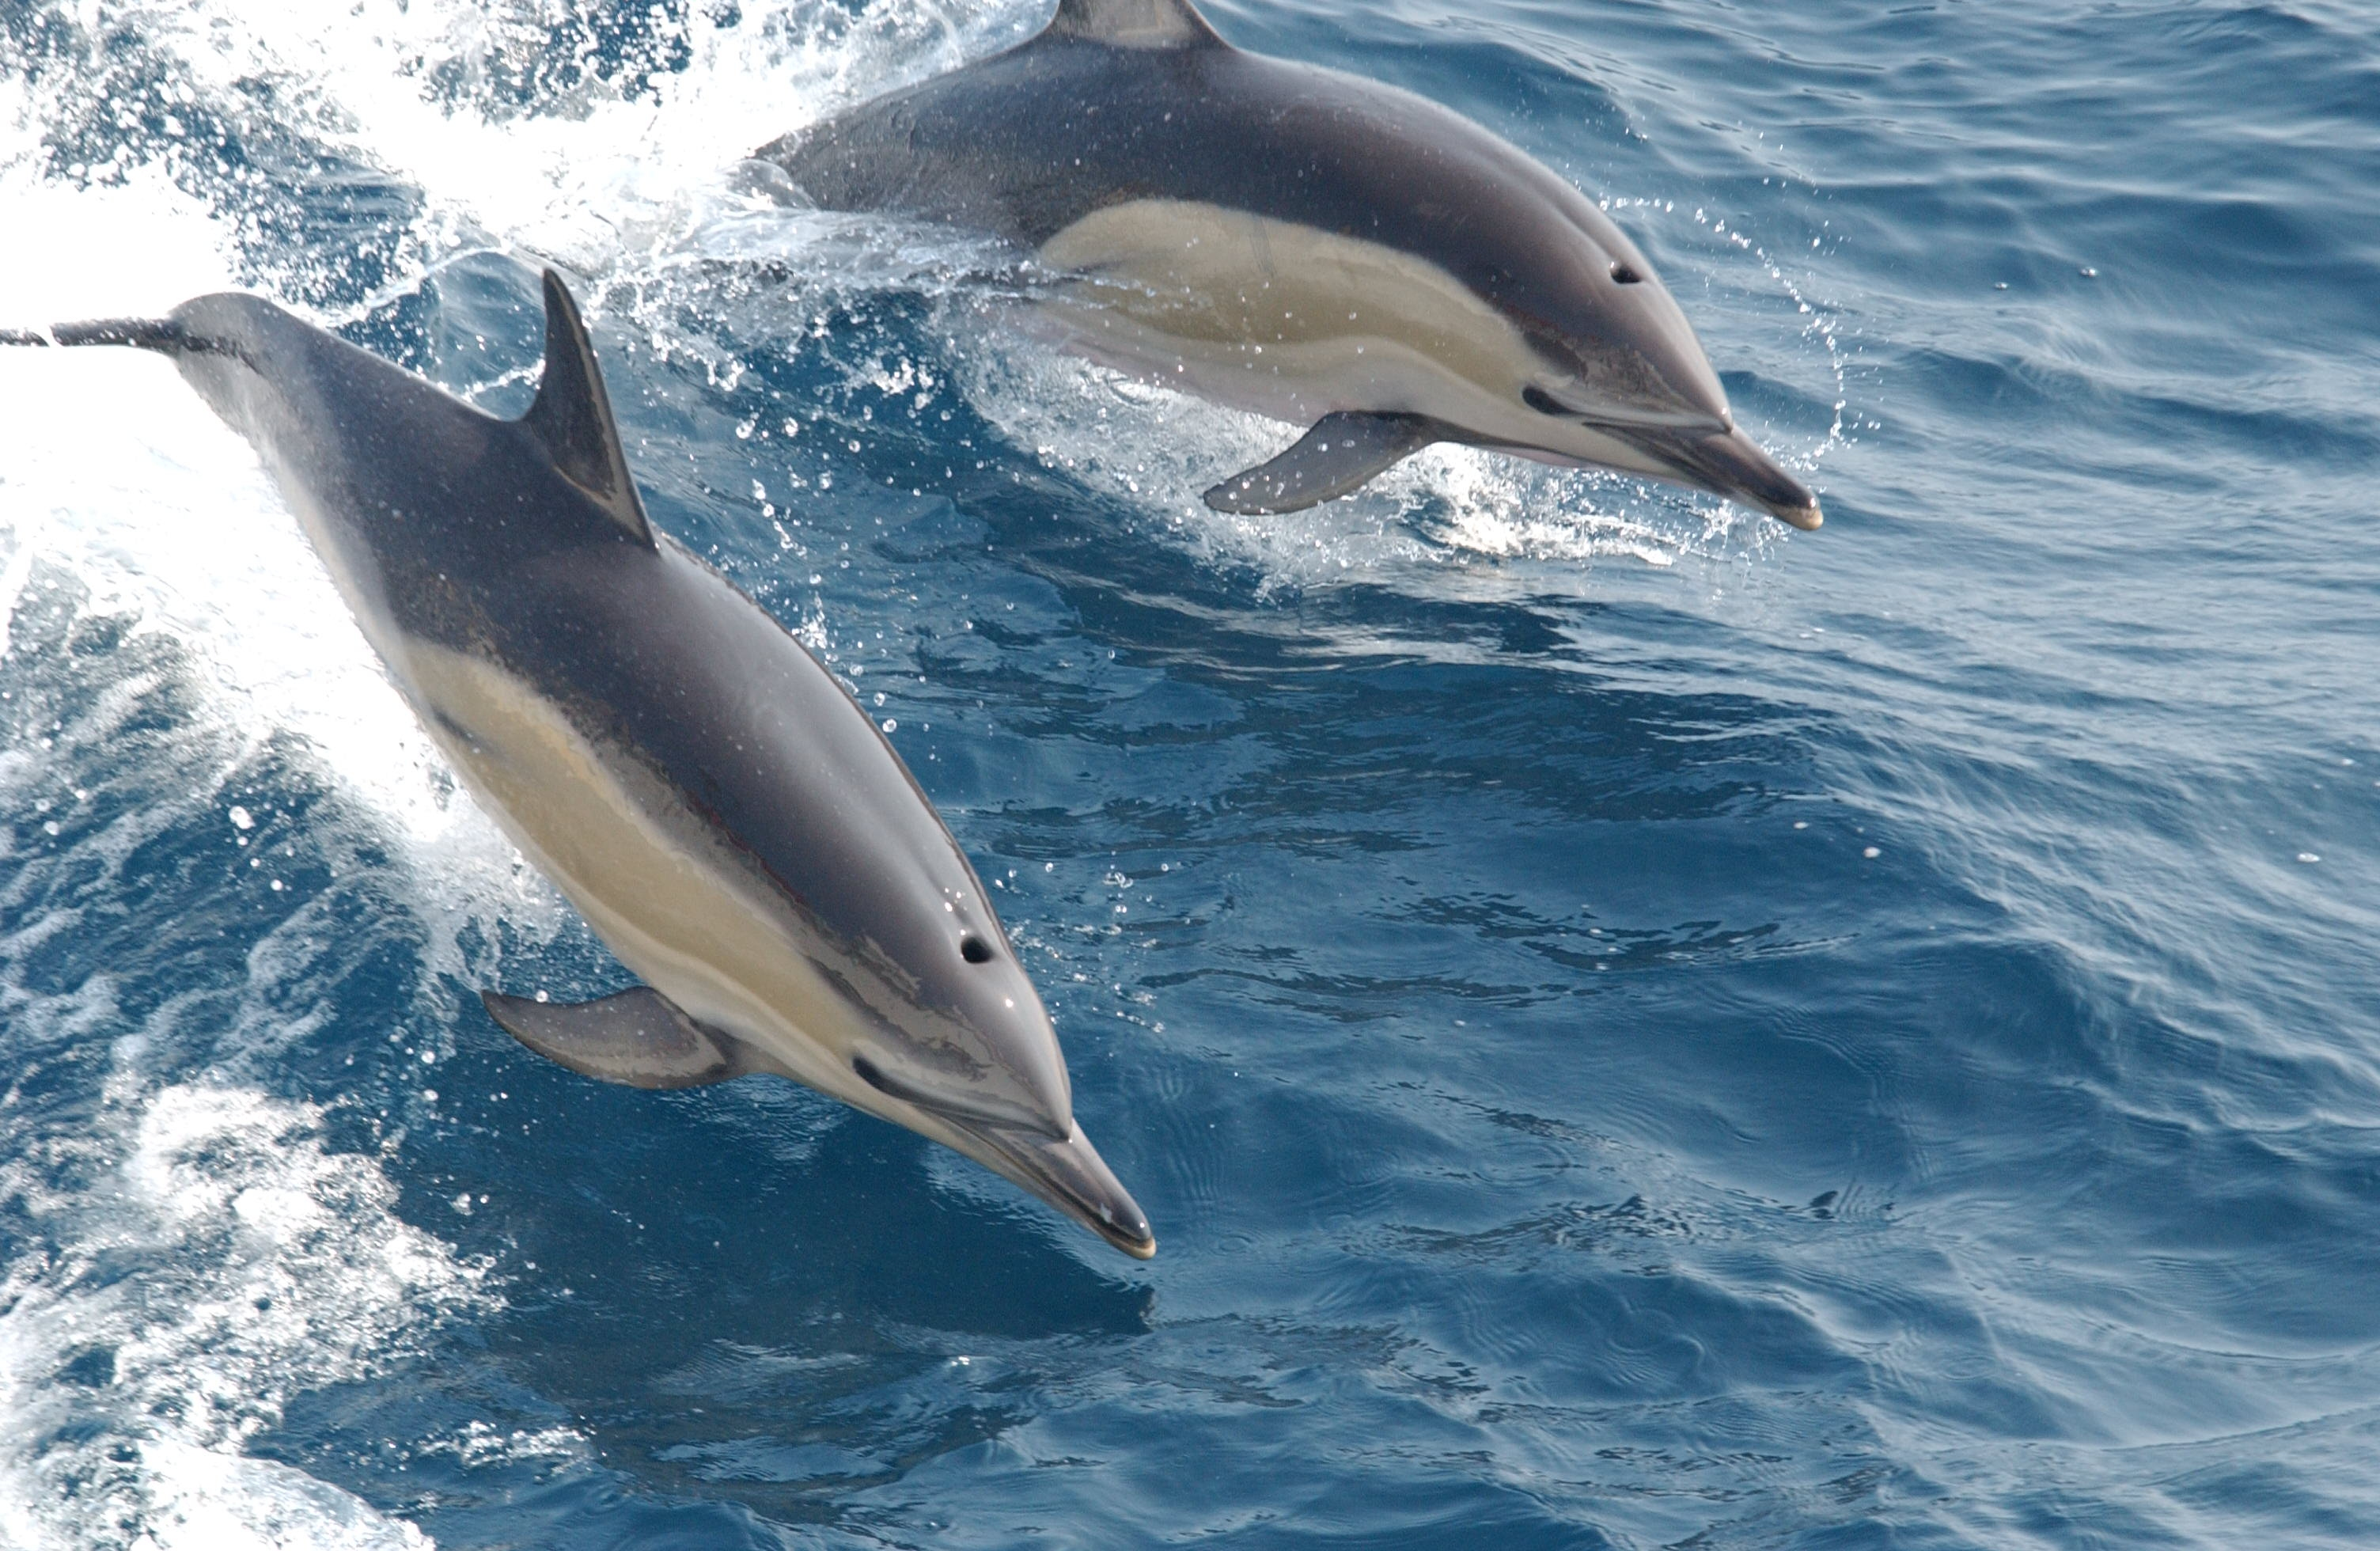 http://upload.wikimedia.org/wikipedia/commons/7/74/Common_dolphin_noaa.jpg